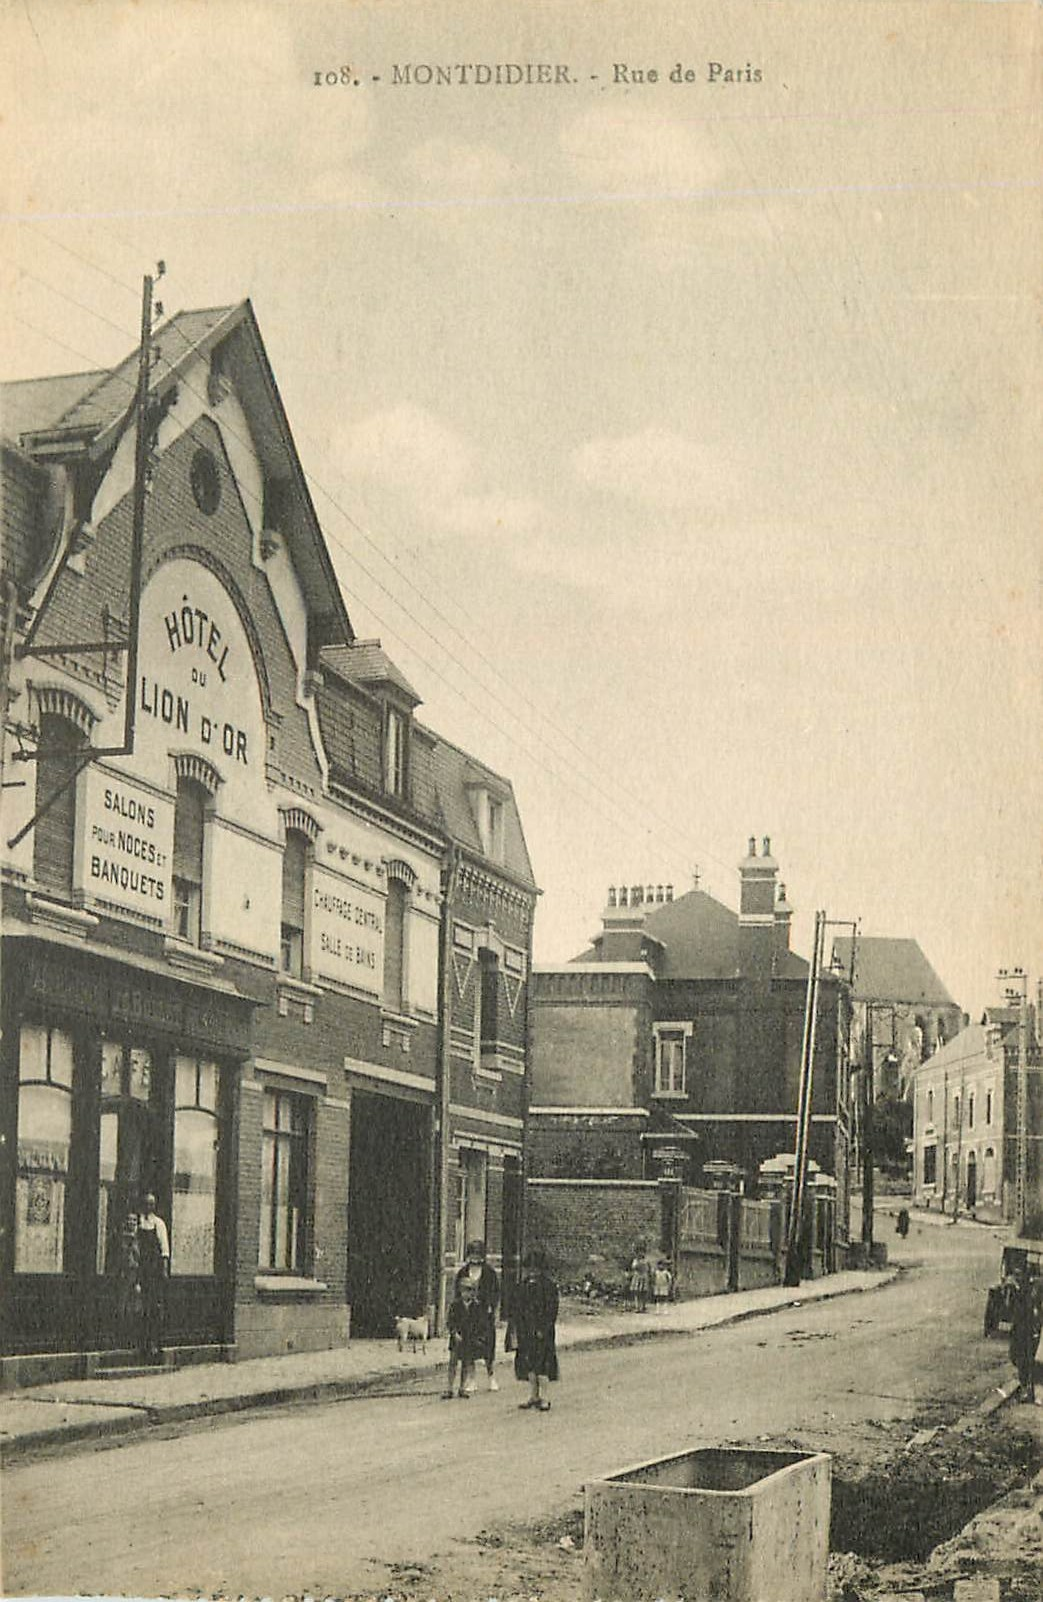 WW 80 MONTDIDIER. Hôtel du Lion d'Or rue de Paris 1939